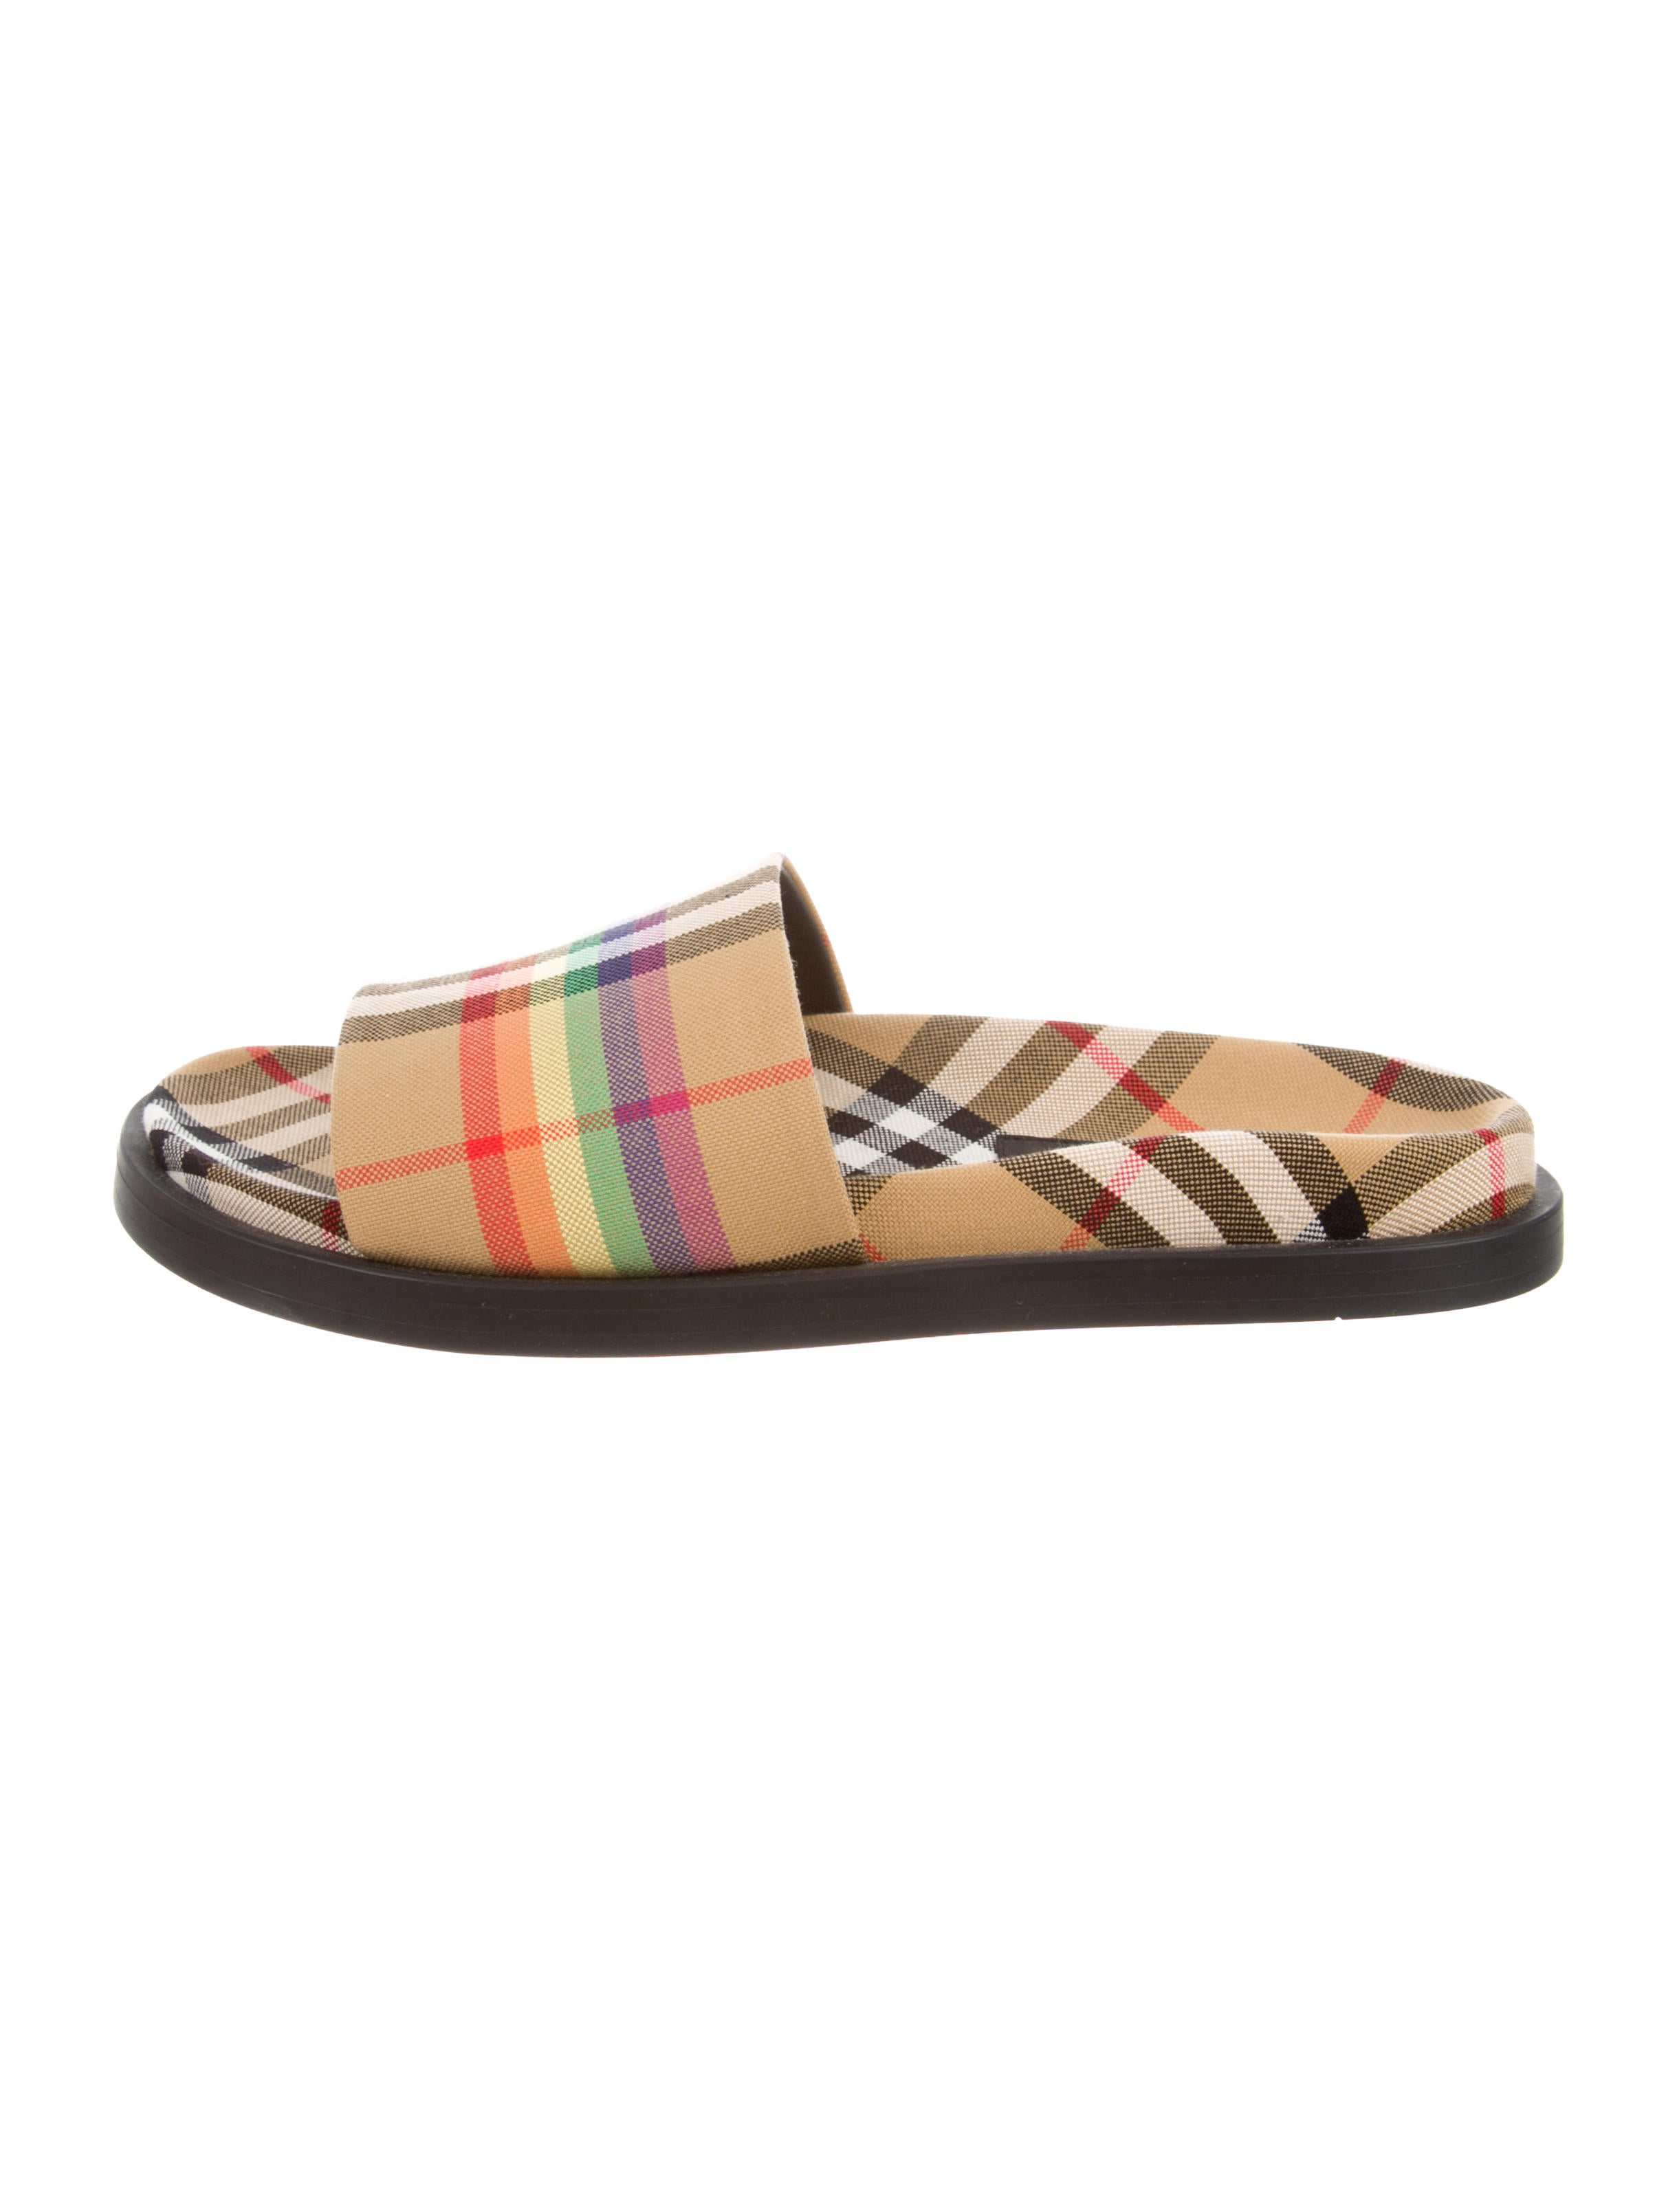 6cdee8e2bde Burberry 2018 Ashmore Rainbow Check Sandals w  Tags - Shoes ...